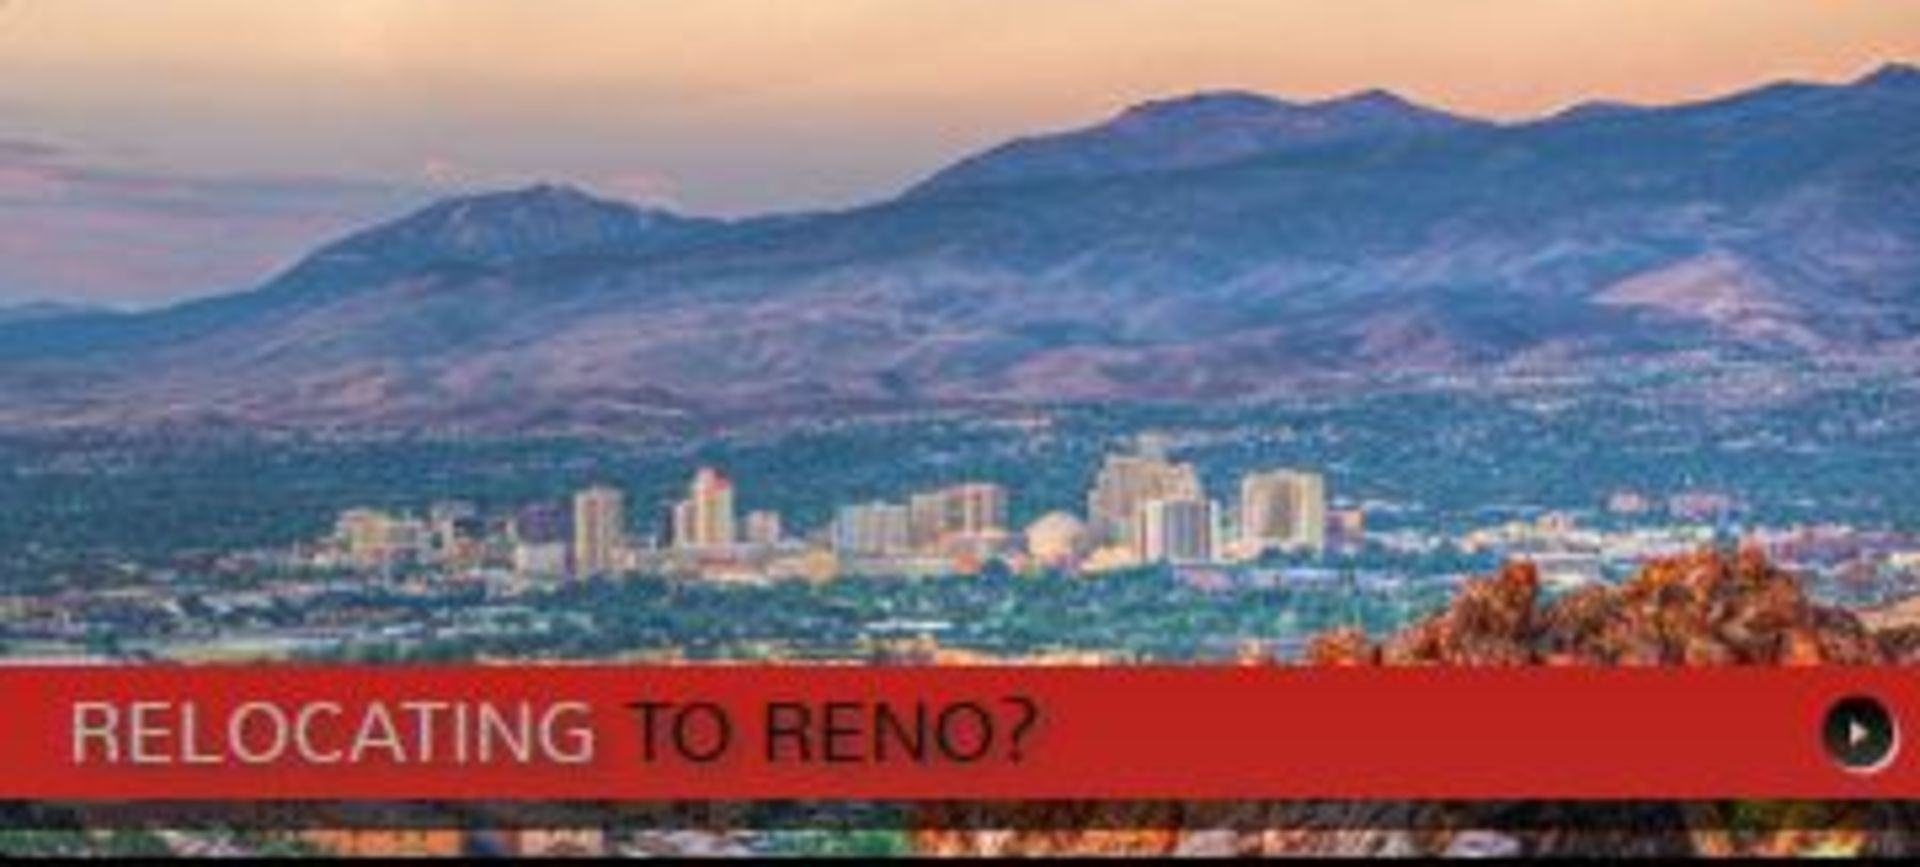 Why People are Relocating to Reno